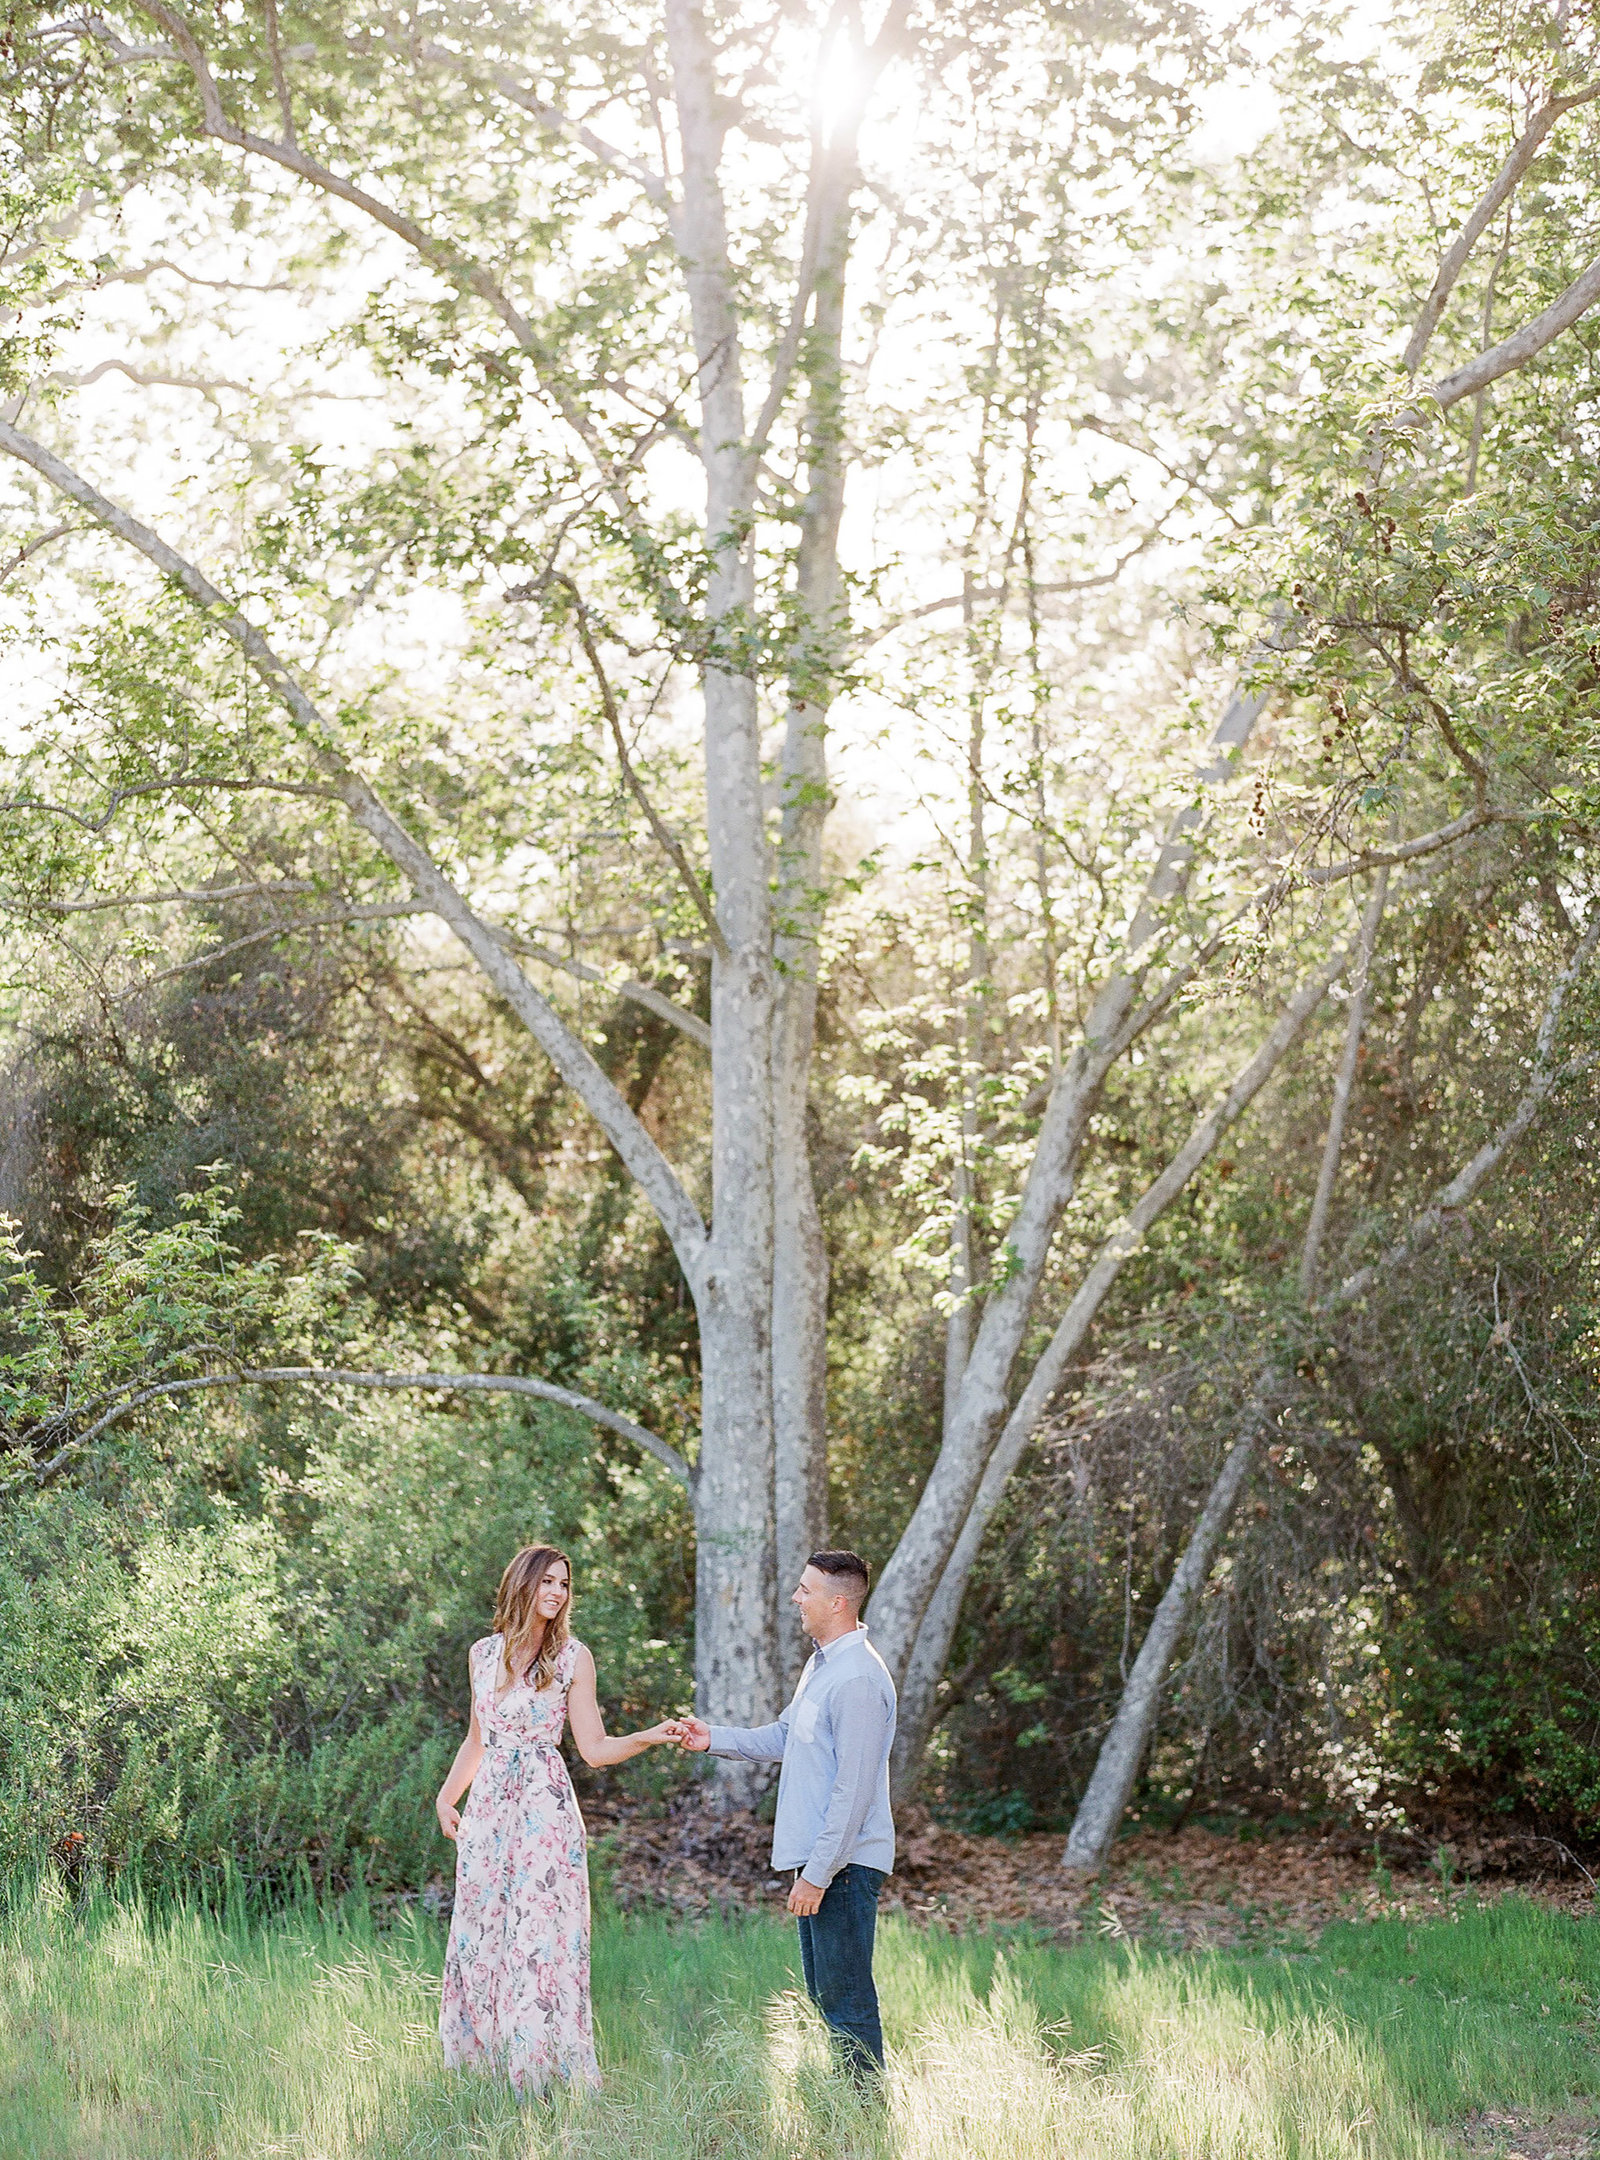 Pura-Soul-Photo-Rollin-Engagement-Film-18